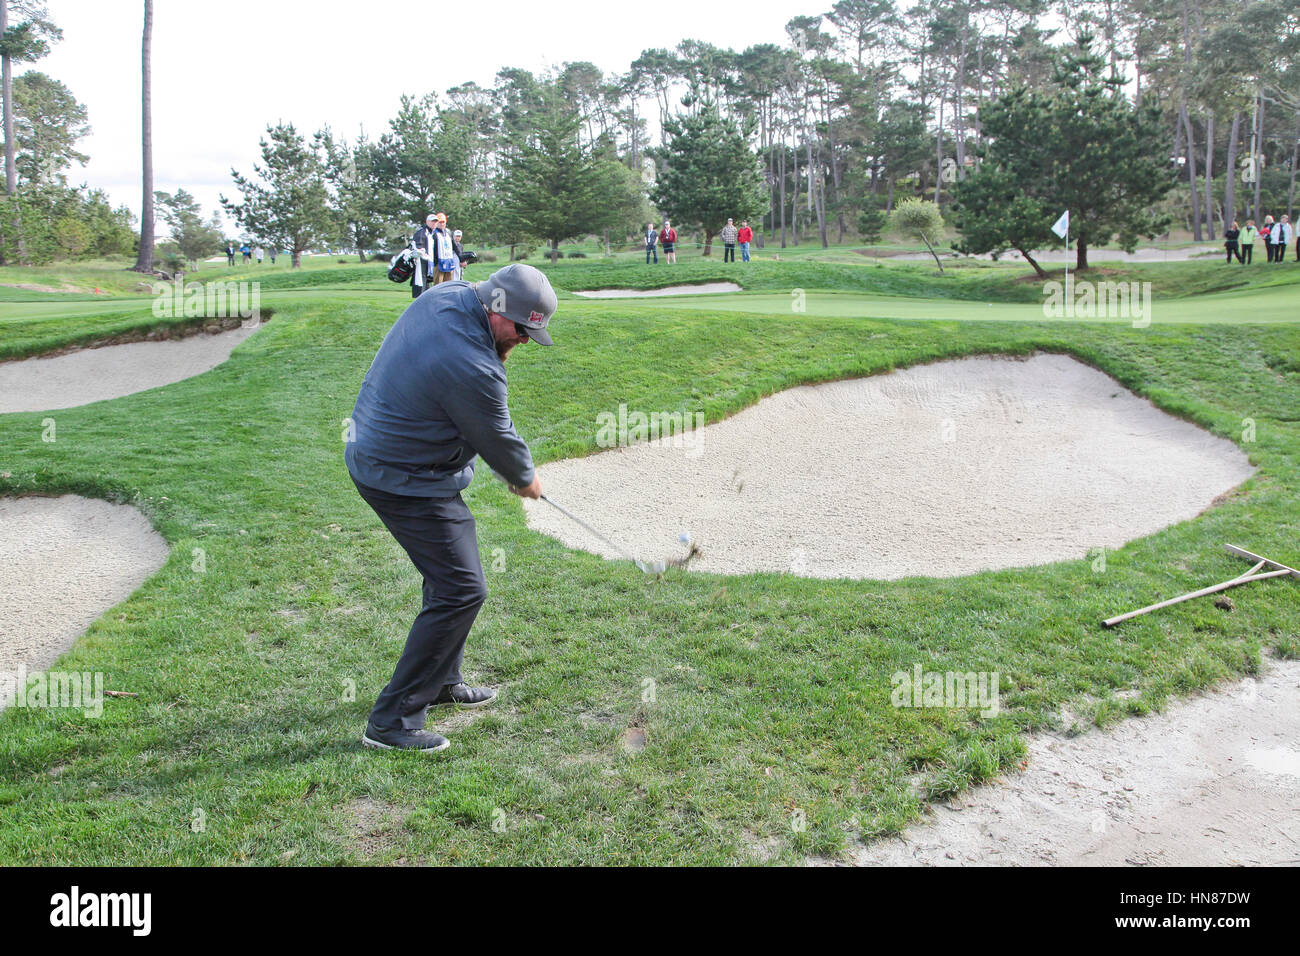 Pebble Beach, California, USA. 9th February, 2017.  Toby Keith, musician/radio star, plays a tricky chip whilst - Stock Image